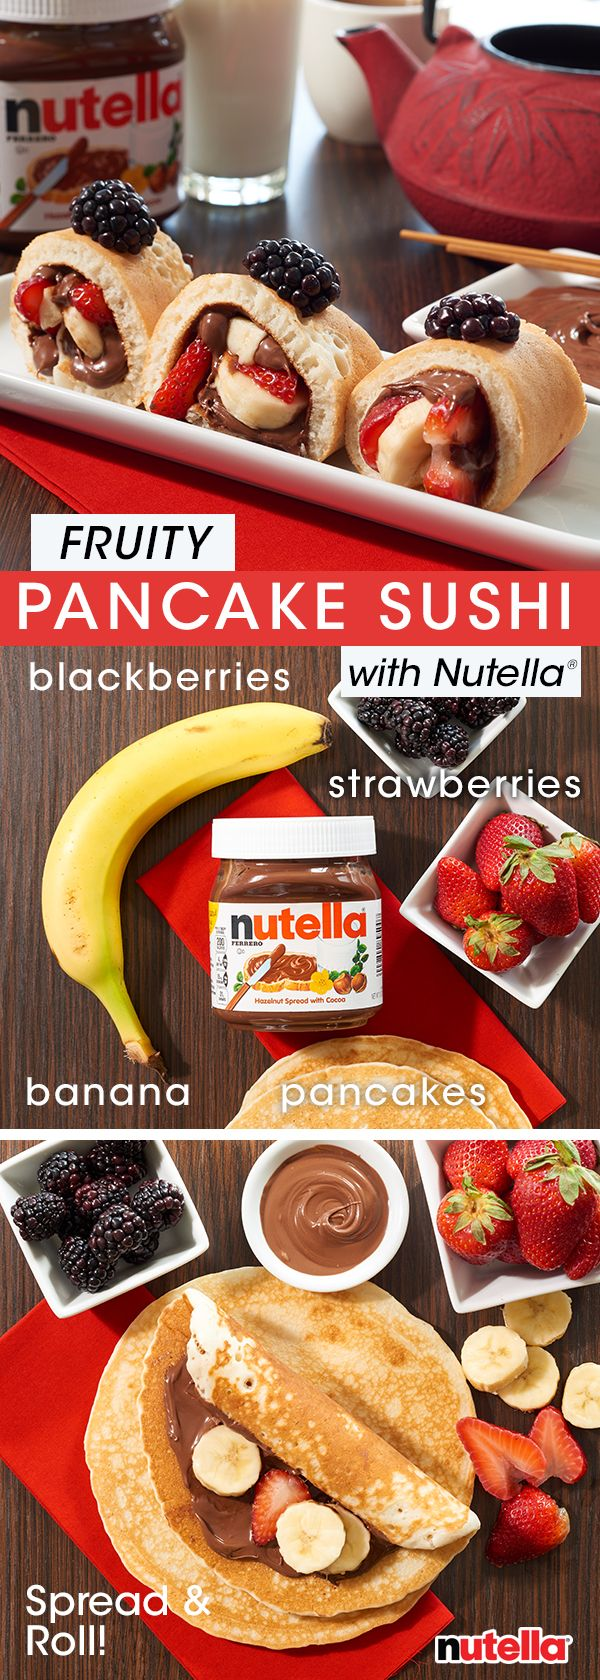 Sushi for breakfast is simpler than it sounds. Just spread a pancake with Nutella®, add fruit, roll and slice. Enjoy and remember, chopsticks optional.